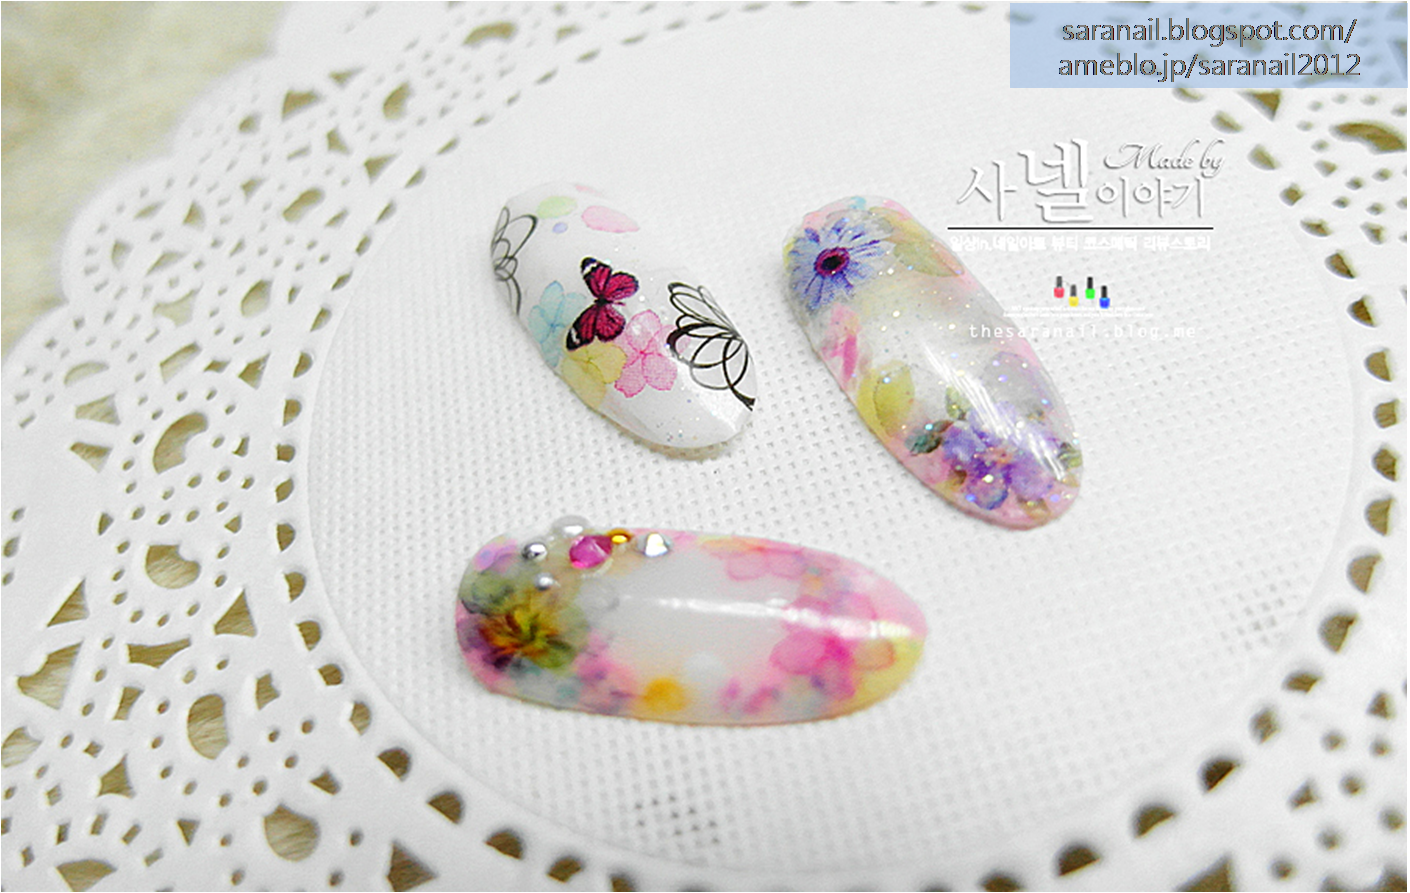 Tarashikomi Nail Art/ Easy-to-follow Tarashikomi Nail Art/ Flower print/ Using Nail Tip Nail Art/ Water Decal Sticker/ Butterfly pattern Nail Art Sticker